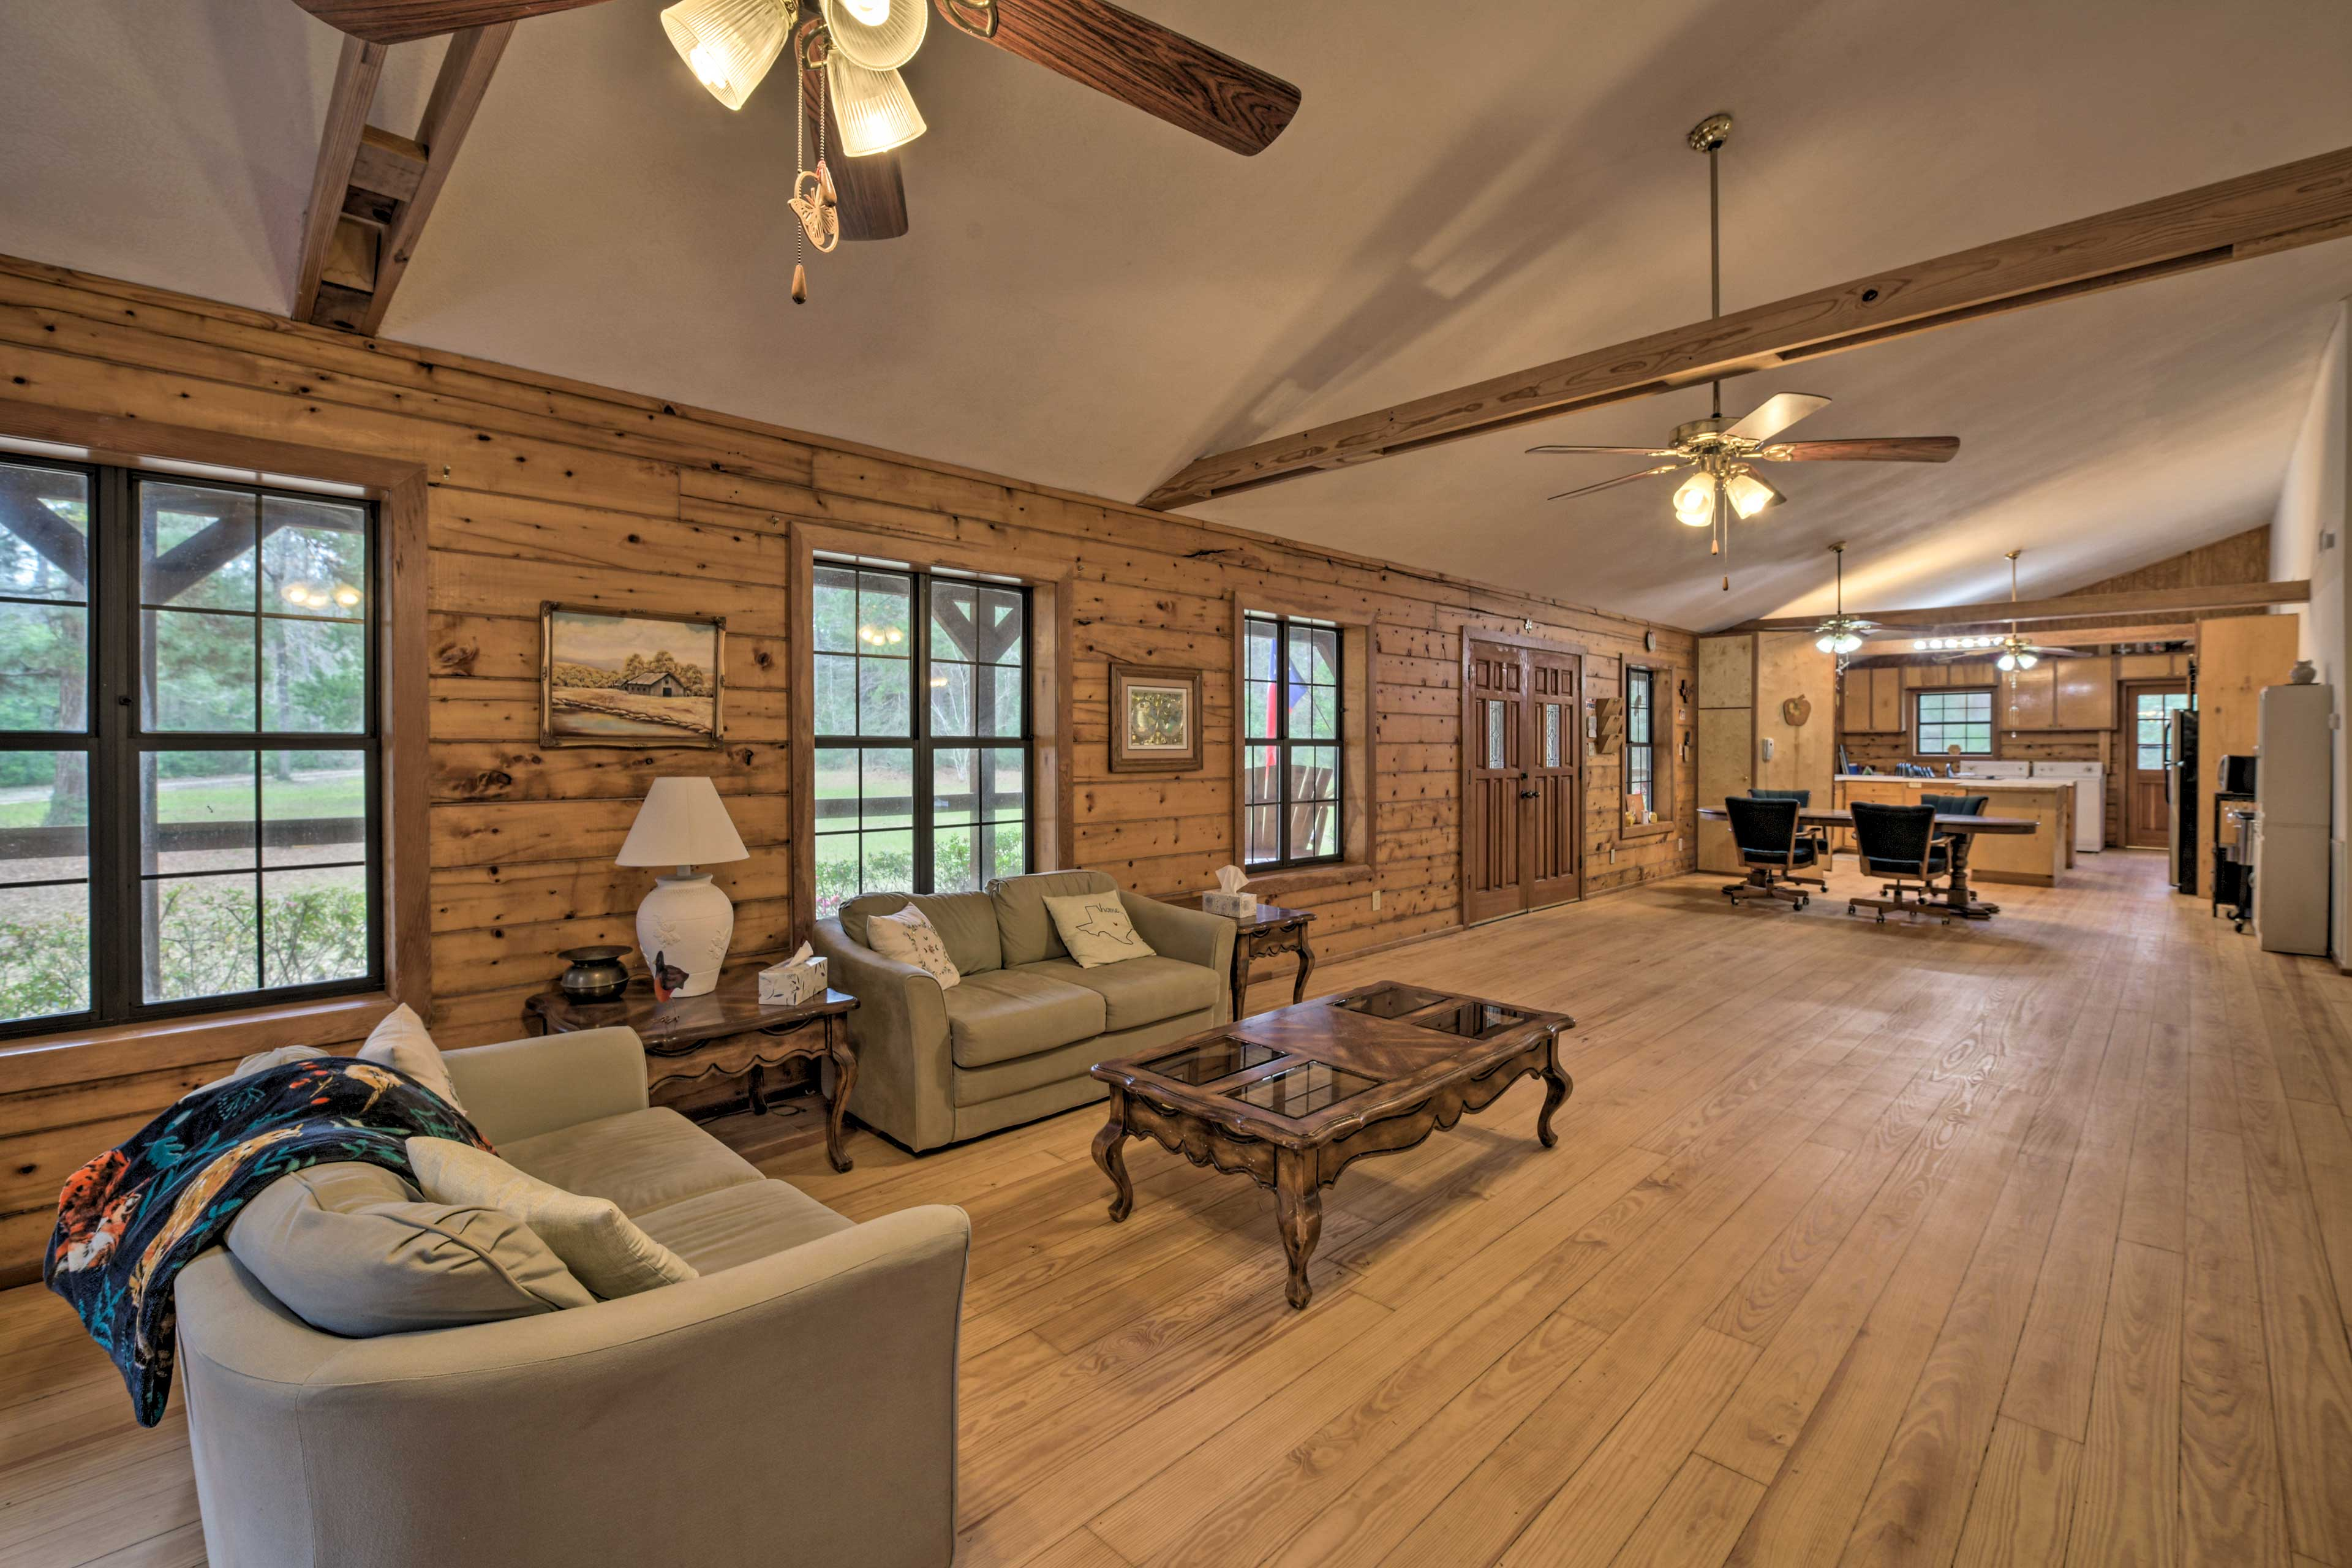 There is plenty of room to lounge around in this cabin.